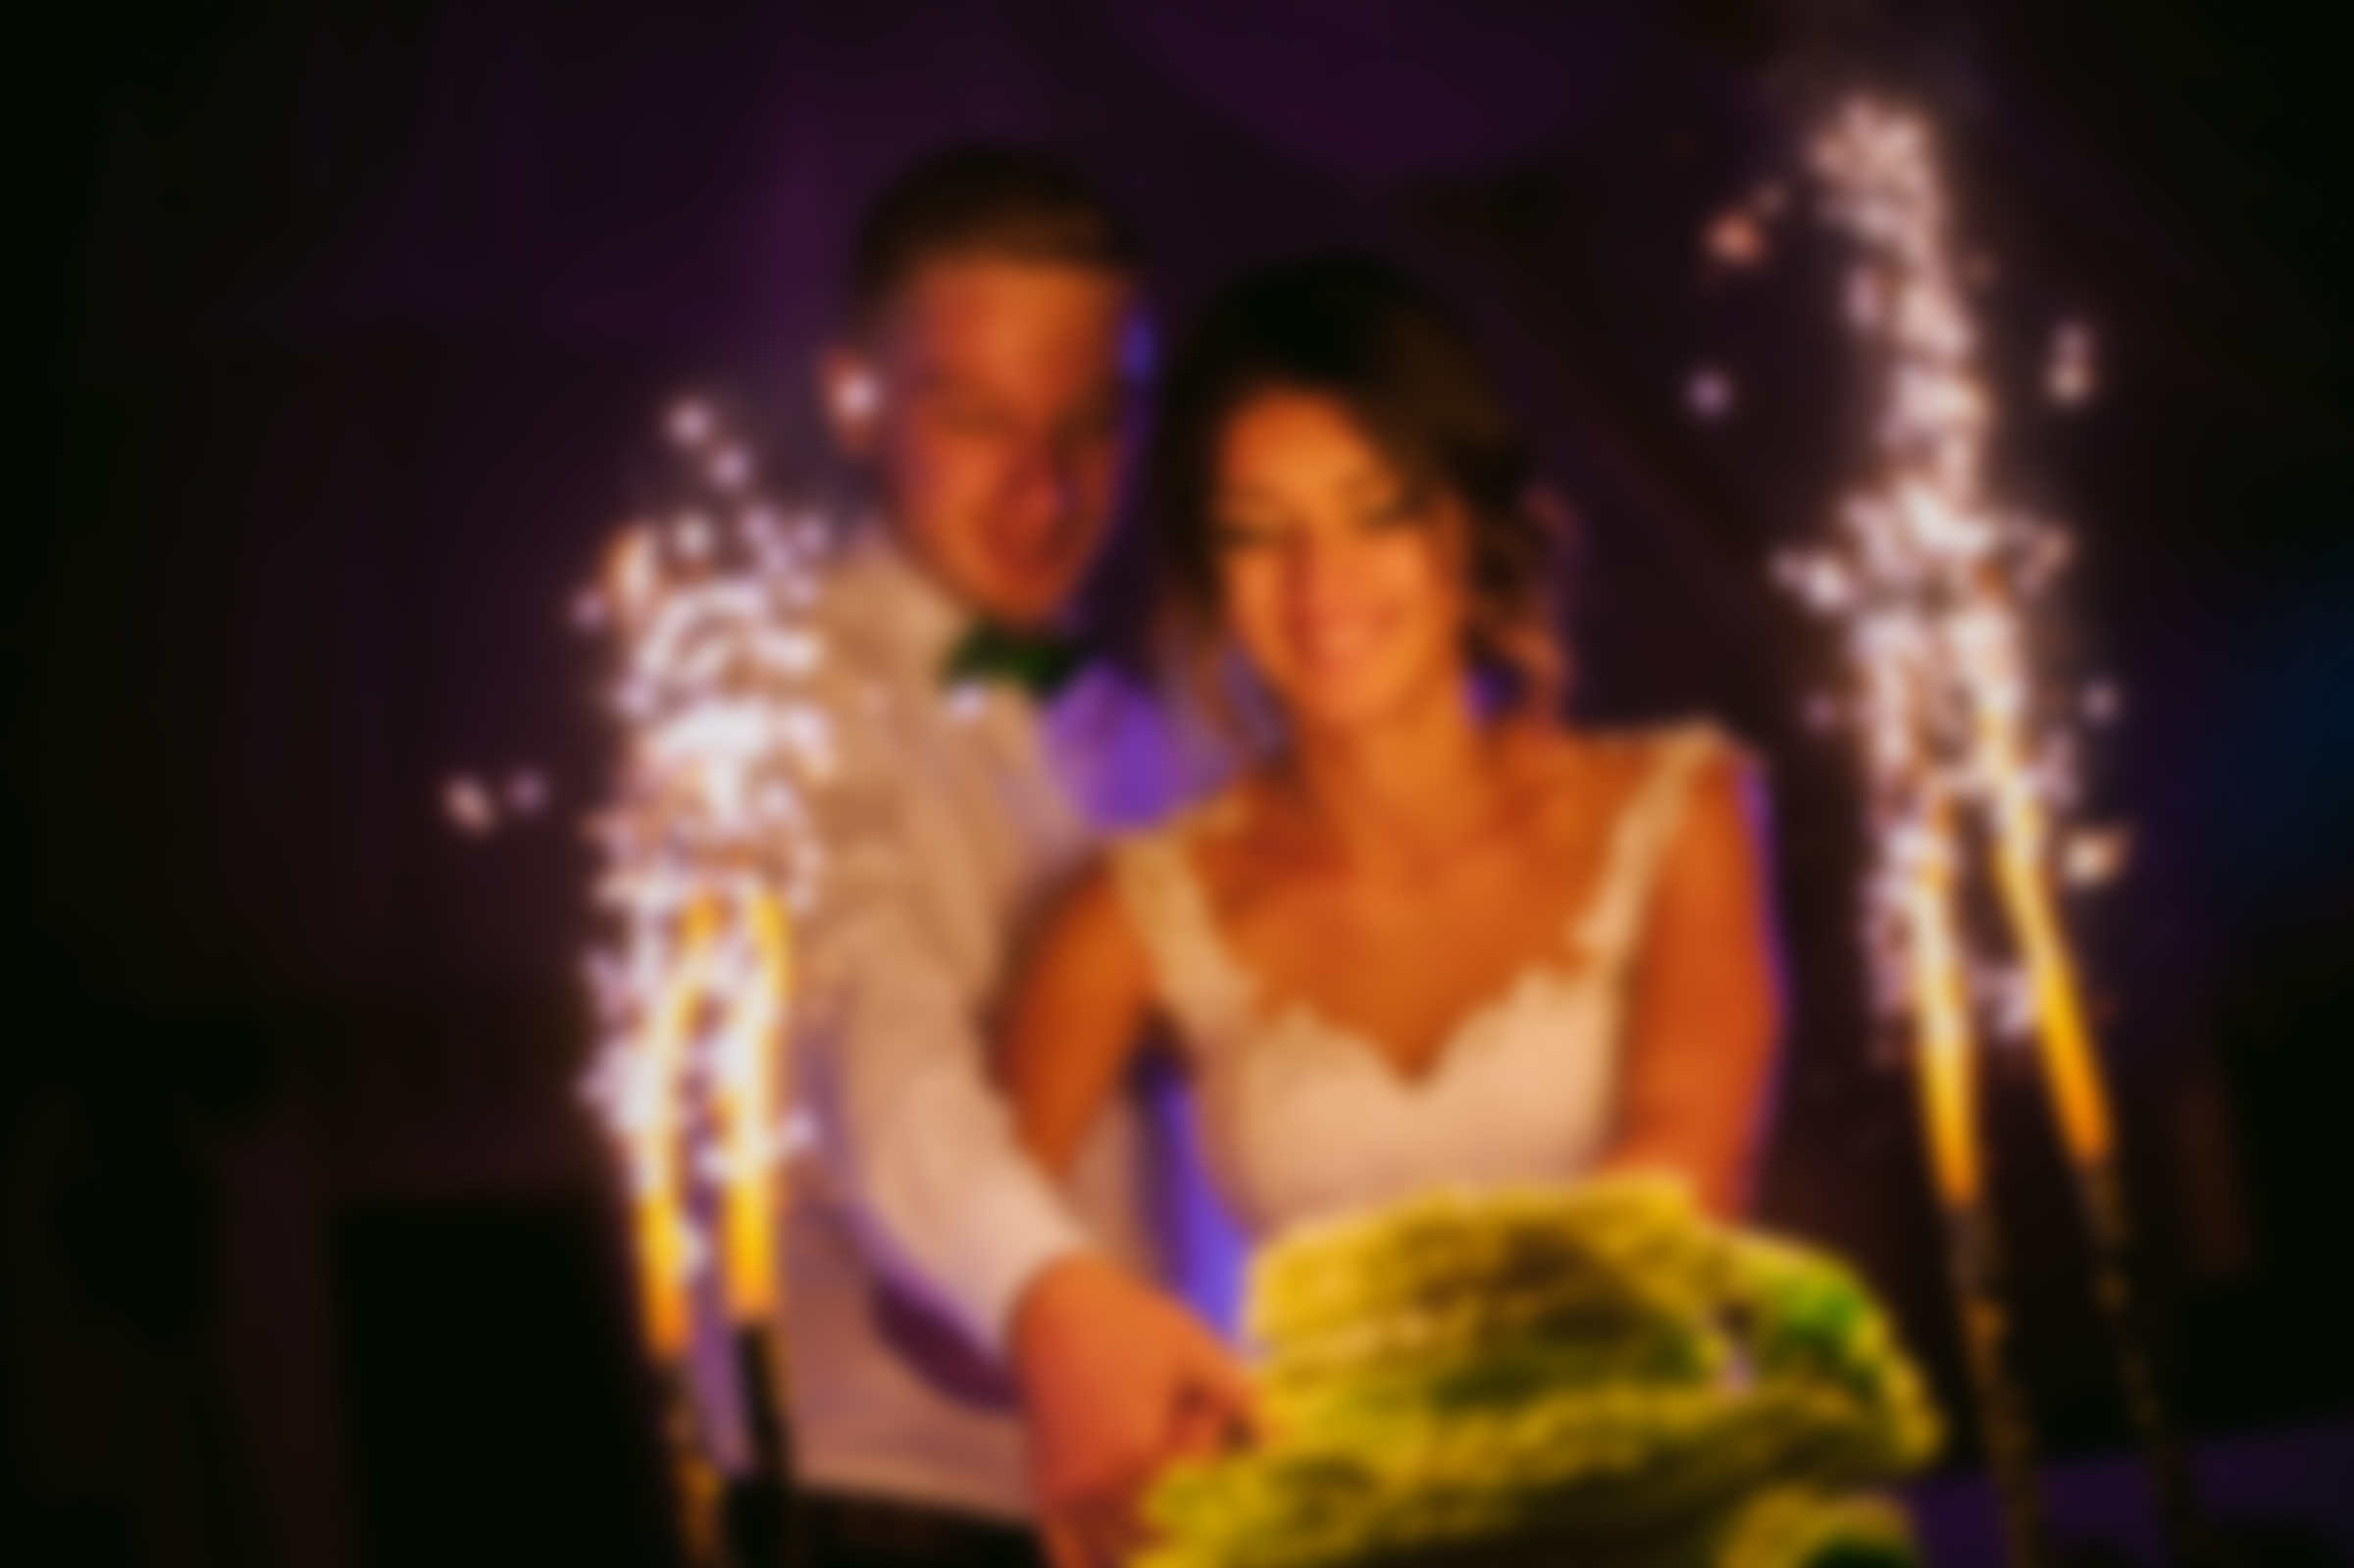 Blurred photo of a bride and groom cutting their cake.